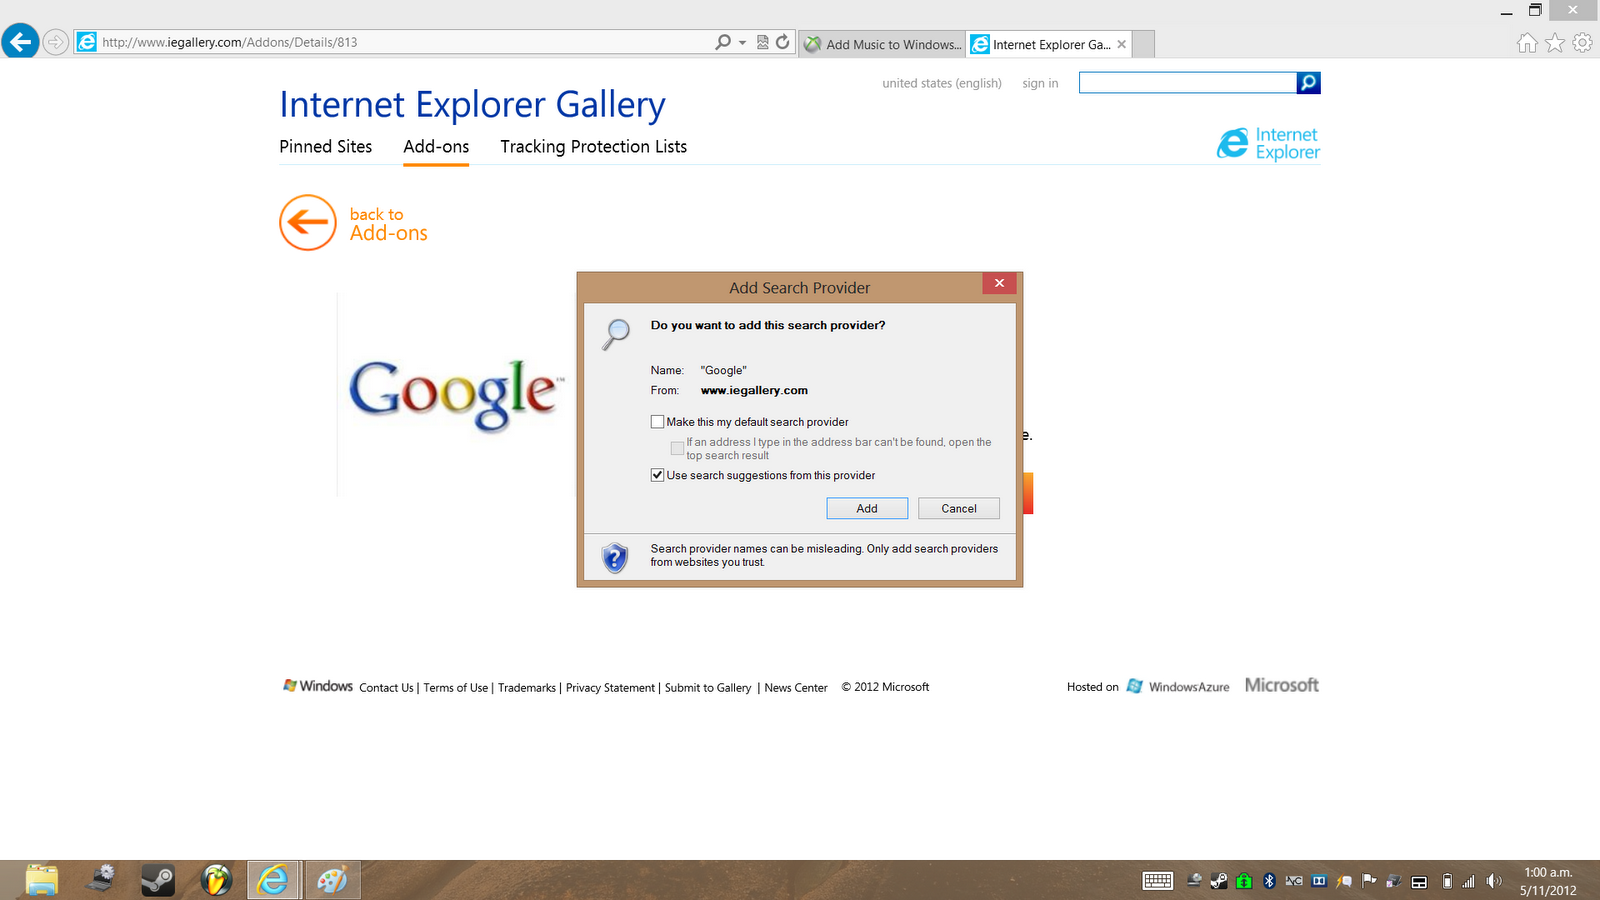 How to View Internet Explorer 7 Search History